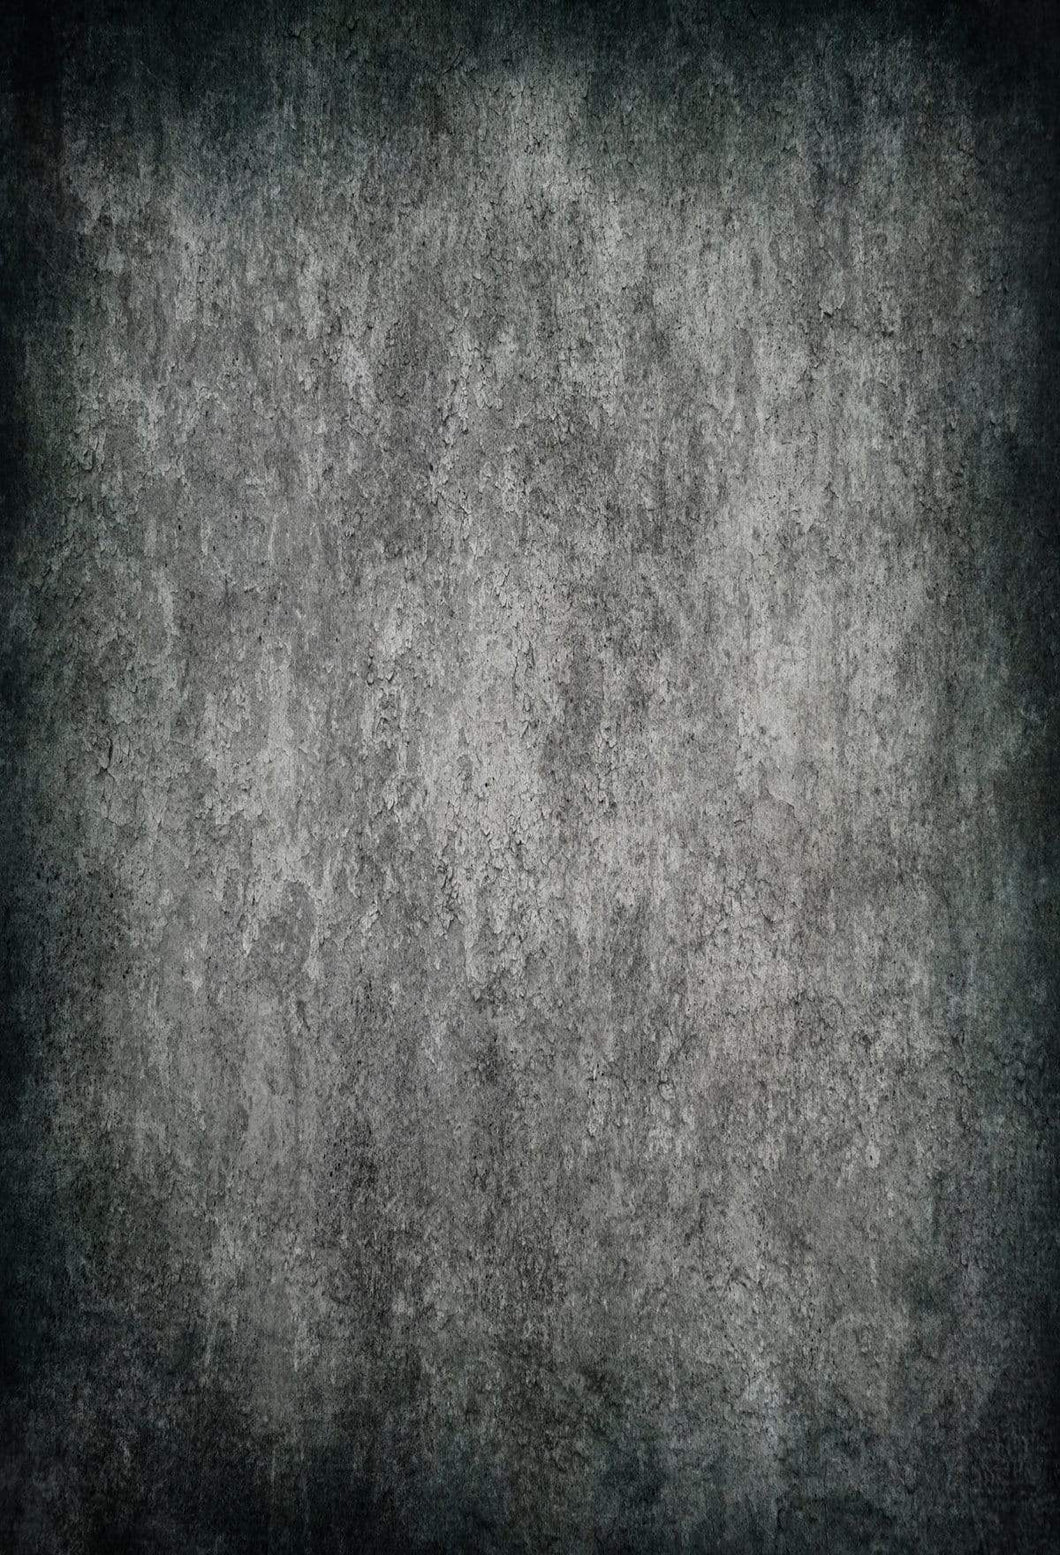 Katebackdrop:Kate Dark Background Abstract Cement Wall Backdrop for Photography